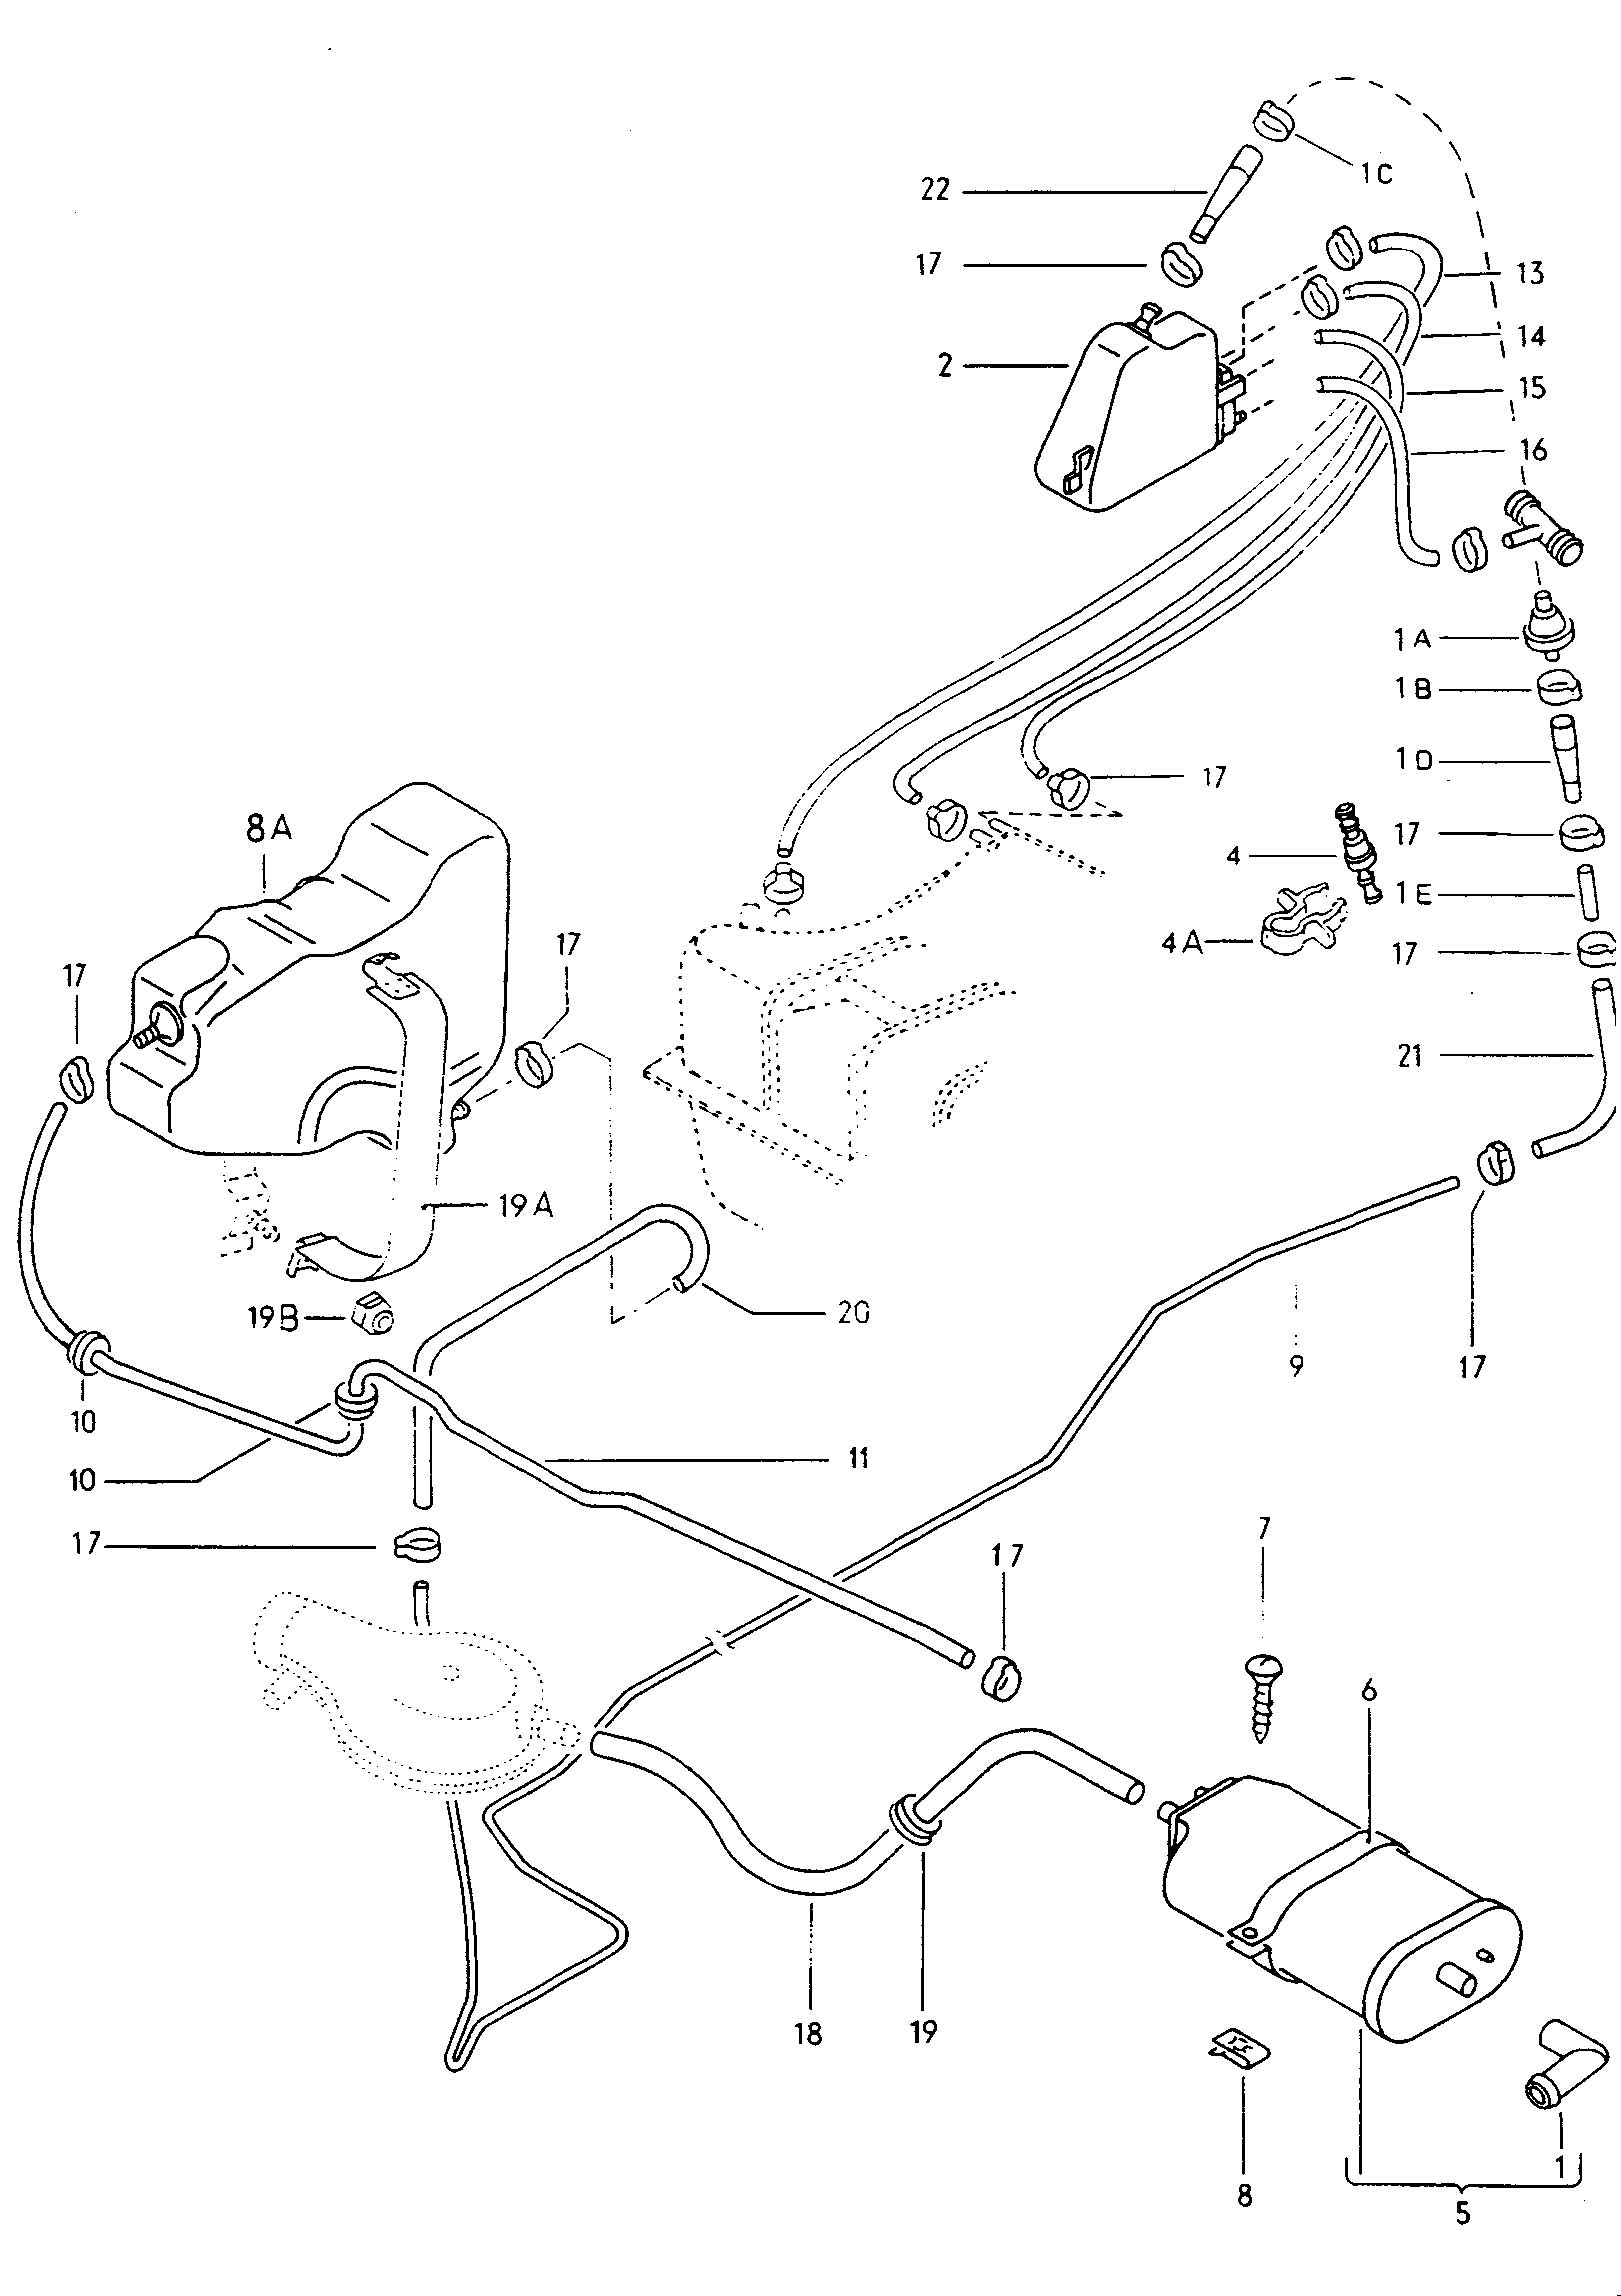 Volkswagen Thing Evaporative Emission Canister Fuel Trap